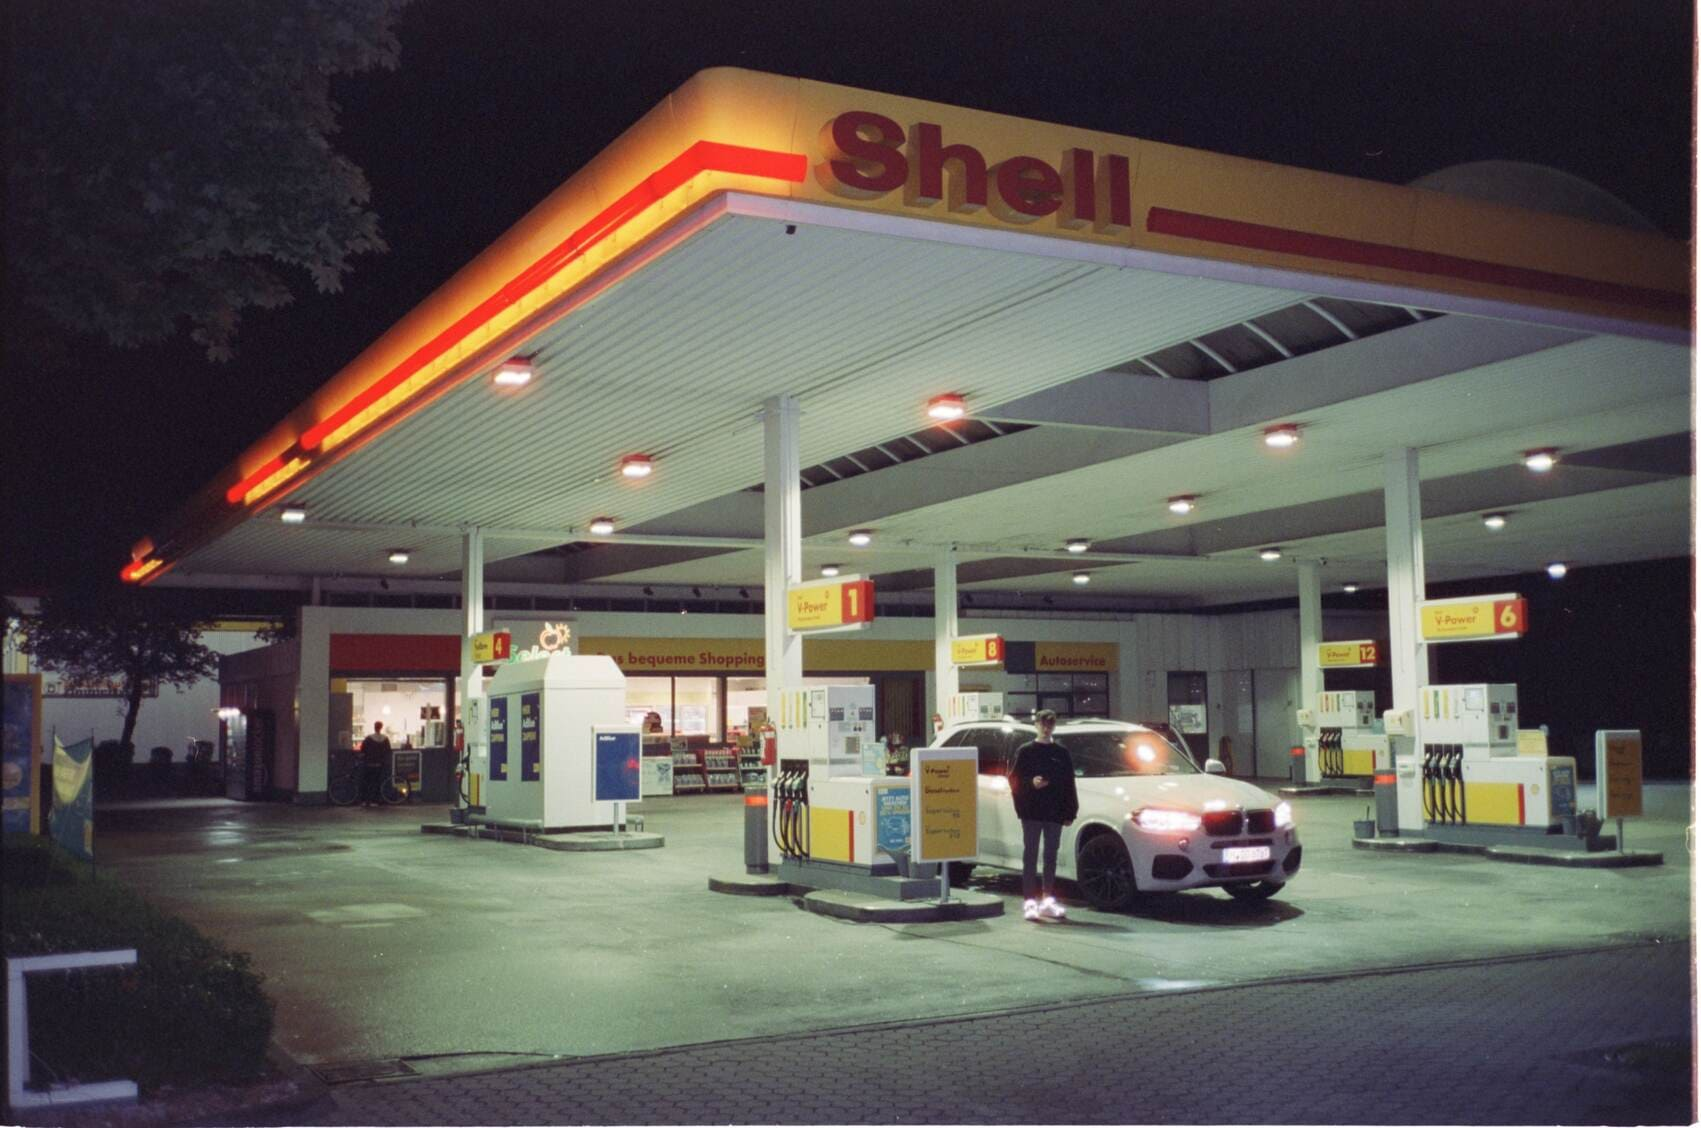 Locationscout Location Scouting Shell Tankstelle bei Nacht